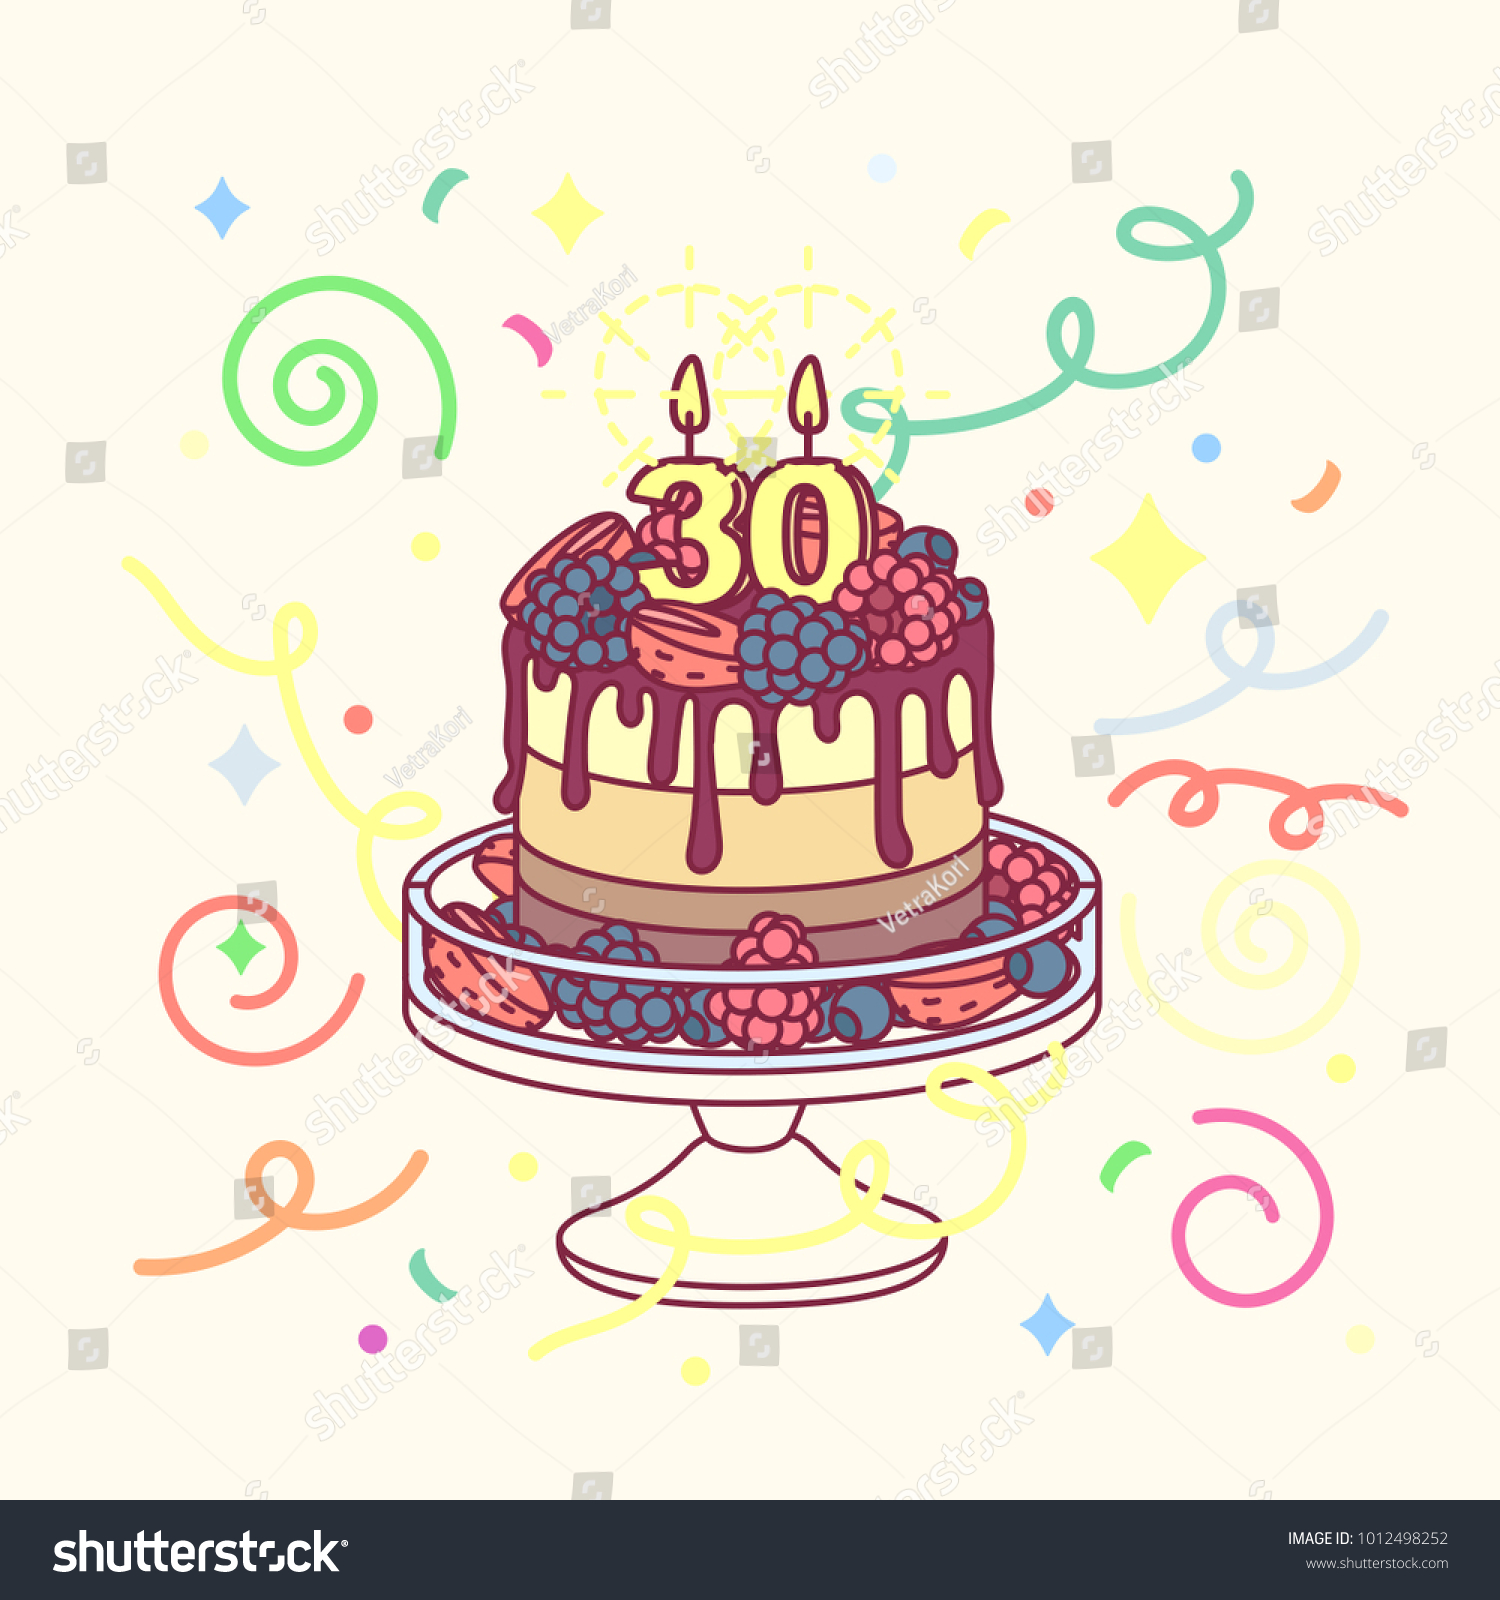 Fabulous Vector Birthday Cake Candle 30 Cakestand Stock Vector Royalty Funny Birthday Cards Online Elaedamsfinfo